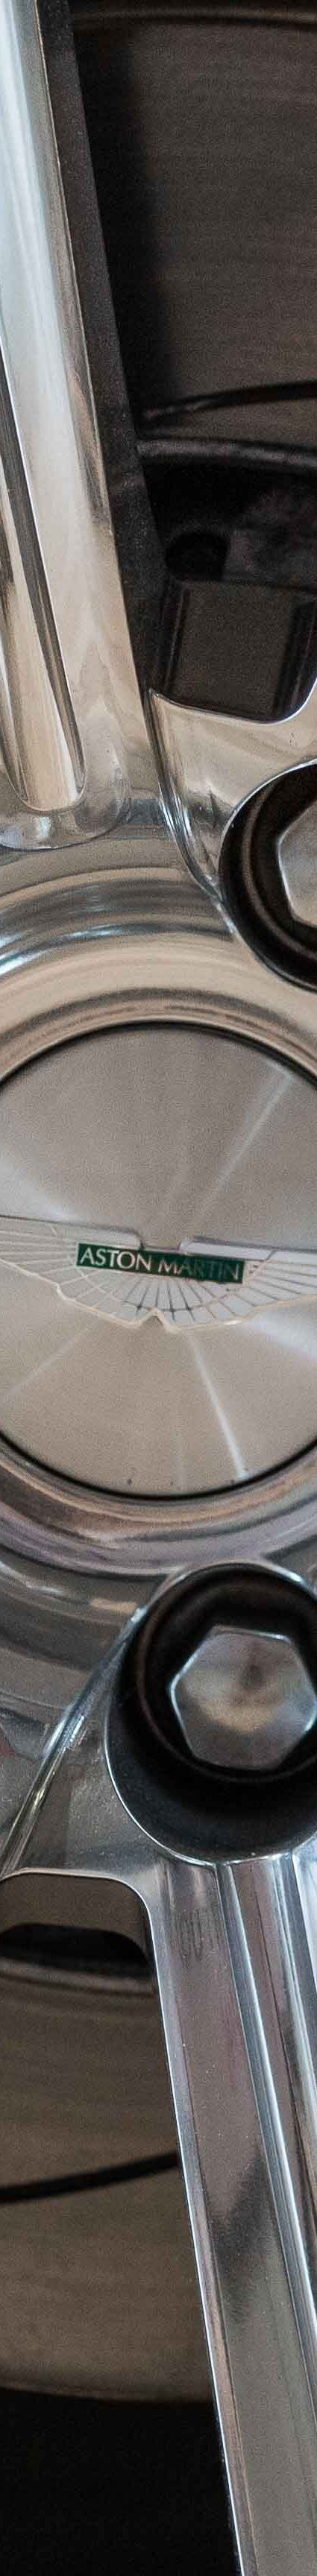 2013 ASTON MARTIN RAPIDE- for sale in Australia